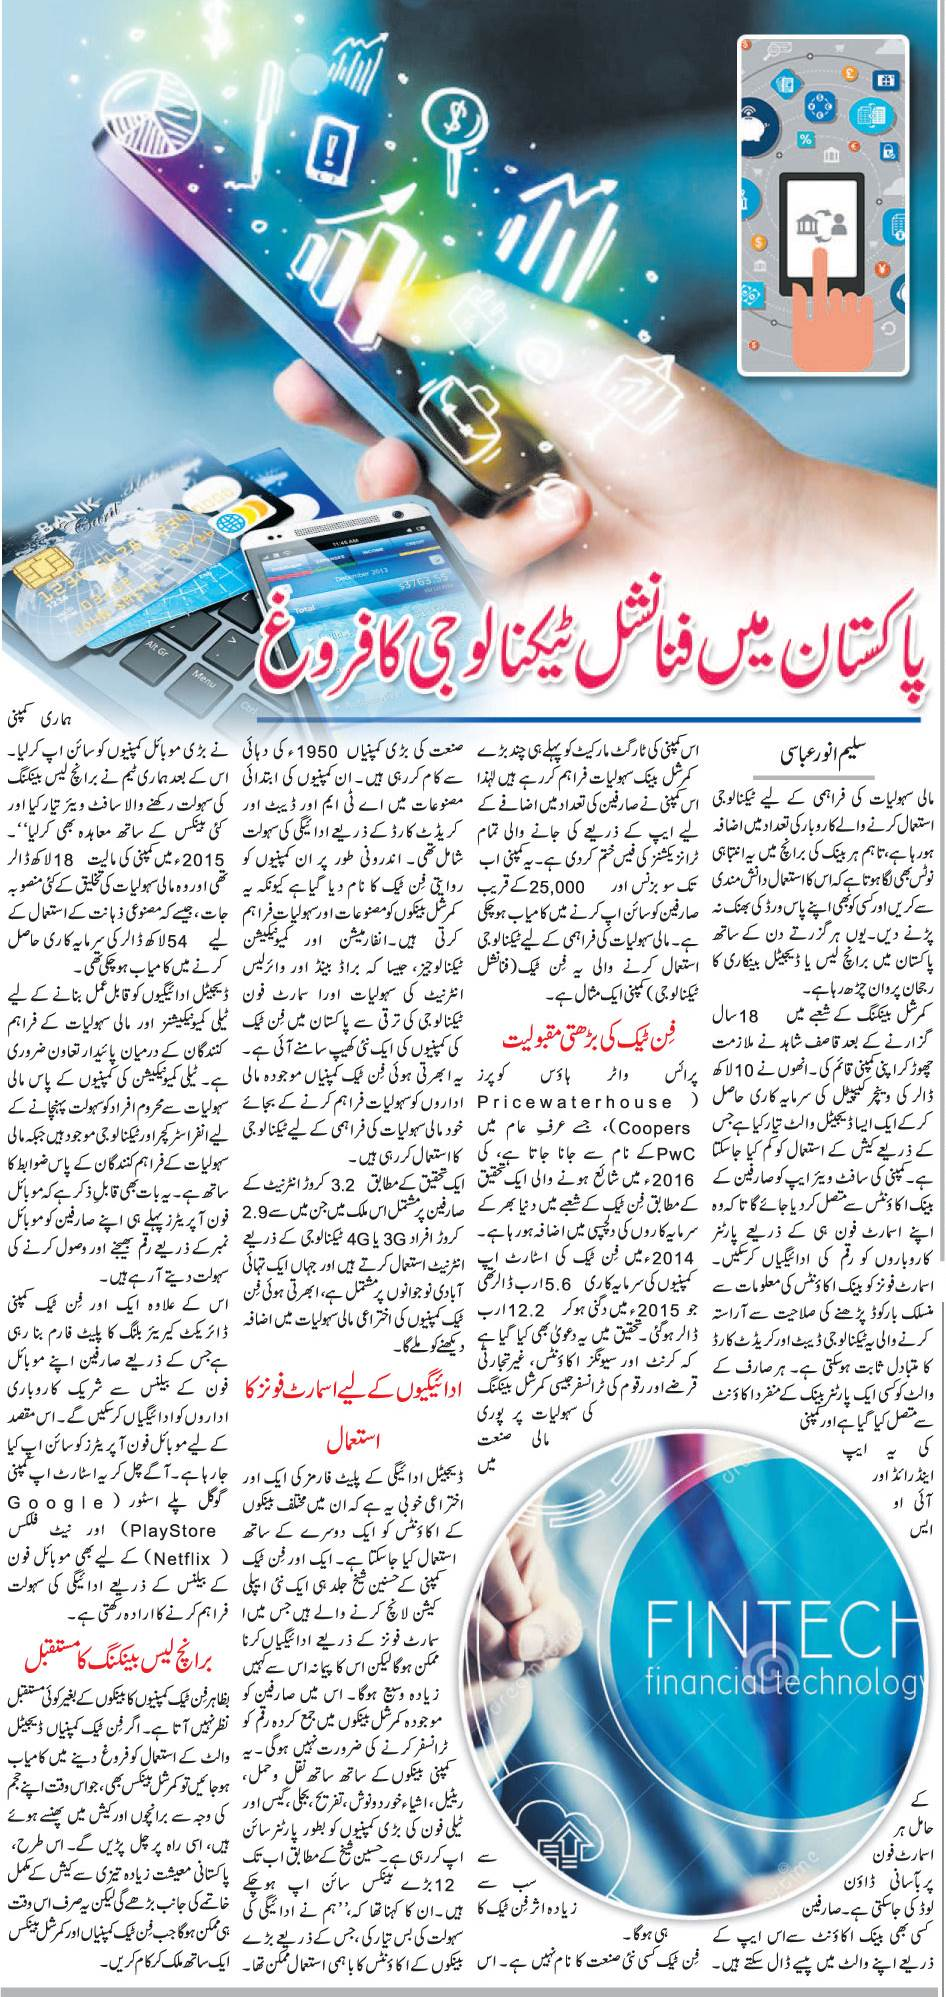 Scope of Fintech (Financial Technology) in Pakistan